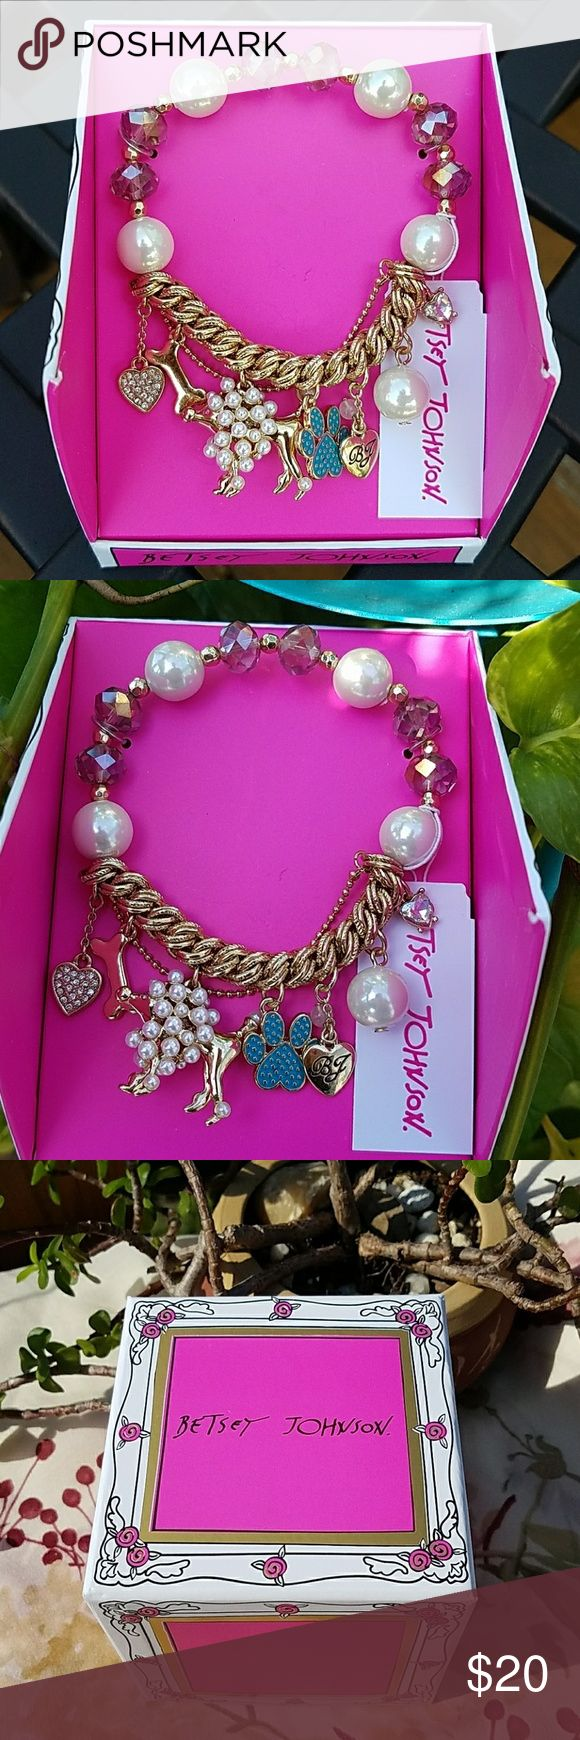 Authentic Betsey Johnson poodle bracelet Betsey Johnson bracelet has pearls and purple beads and a gold chain with a poodle,  bone , puppy paw, rhinestone heart  and  a heart with Betsey Johnson logo. This is authentic bracelet and new comes with a nice gift box. Just think Christmas is  creeping up on us. Betsey Johnson Jewelry Bracelets